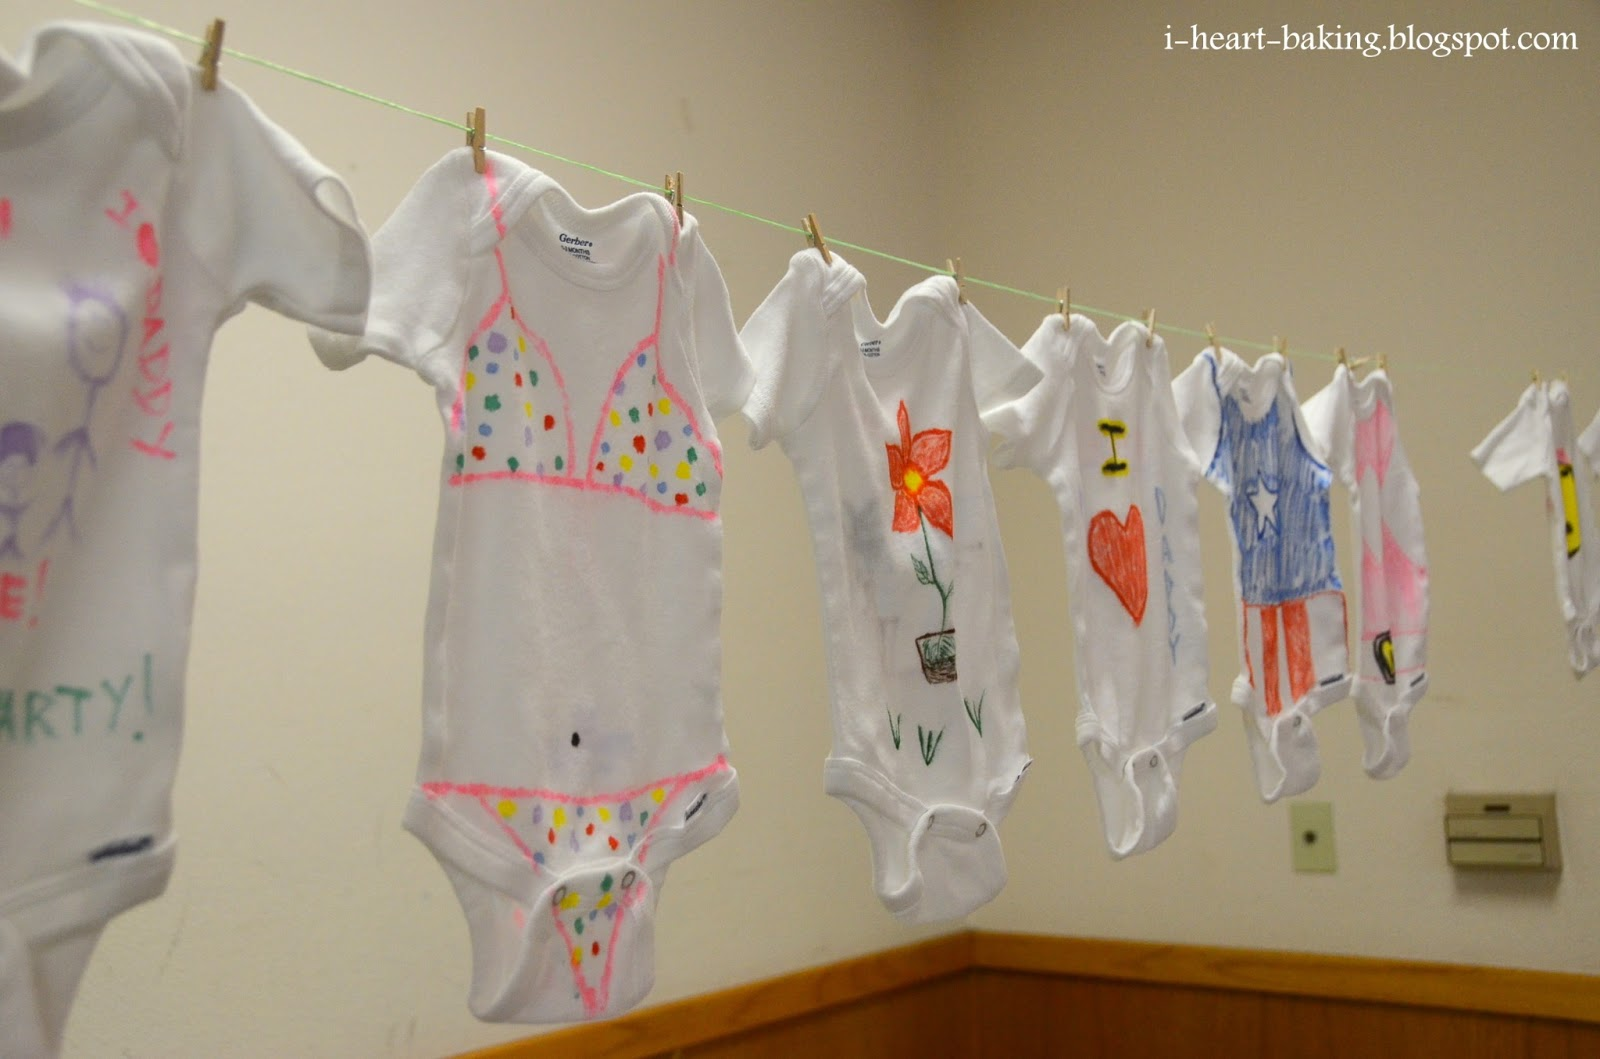 the baby shower was a blast there were lots of games and activities